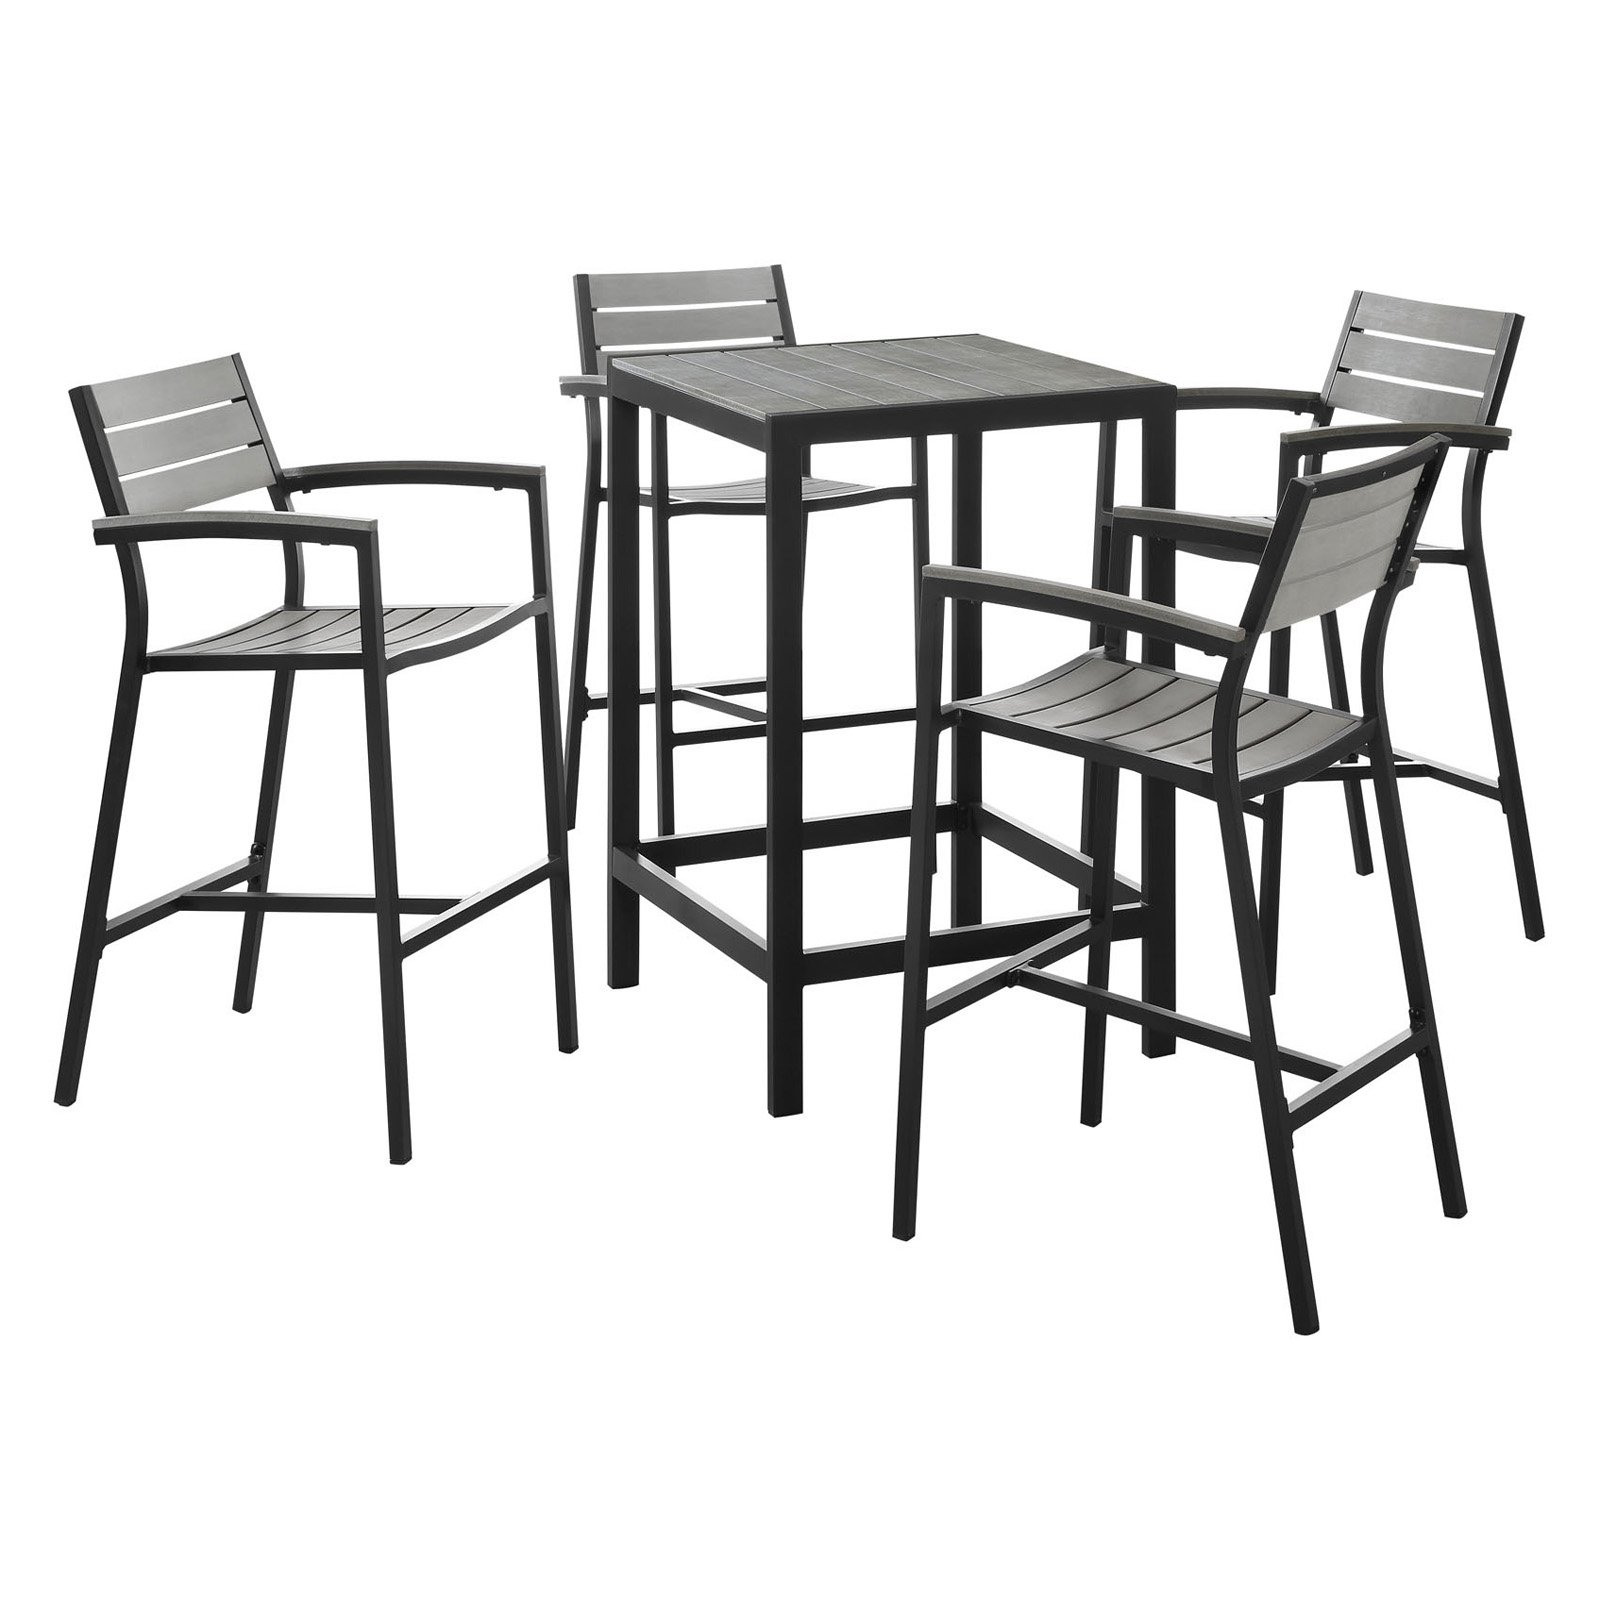 Modway Maine 5-Piece Outdoor Patio Bar Set, Multiple Colors